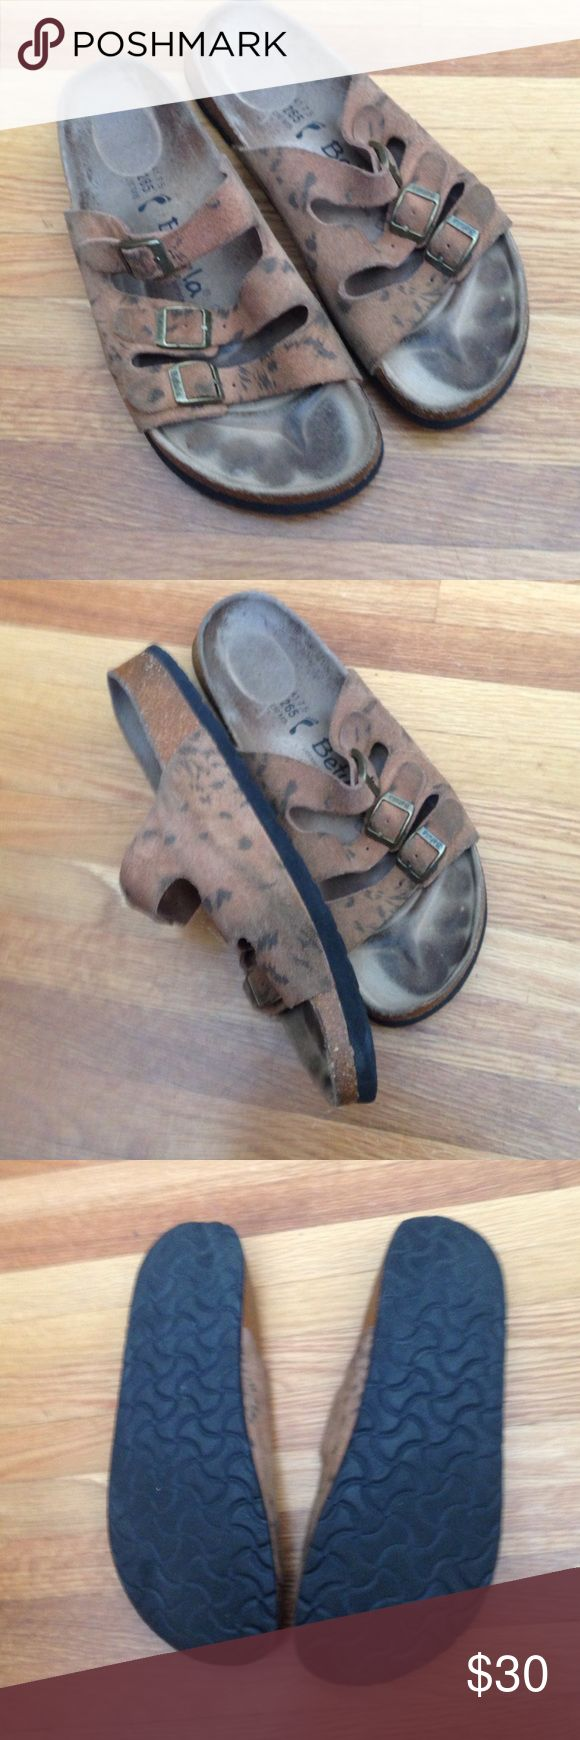 Suede printed Betula sandals By Birkenstock 41 or women's 10 good used condition Birkenstock Shoes Sandals